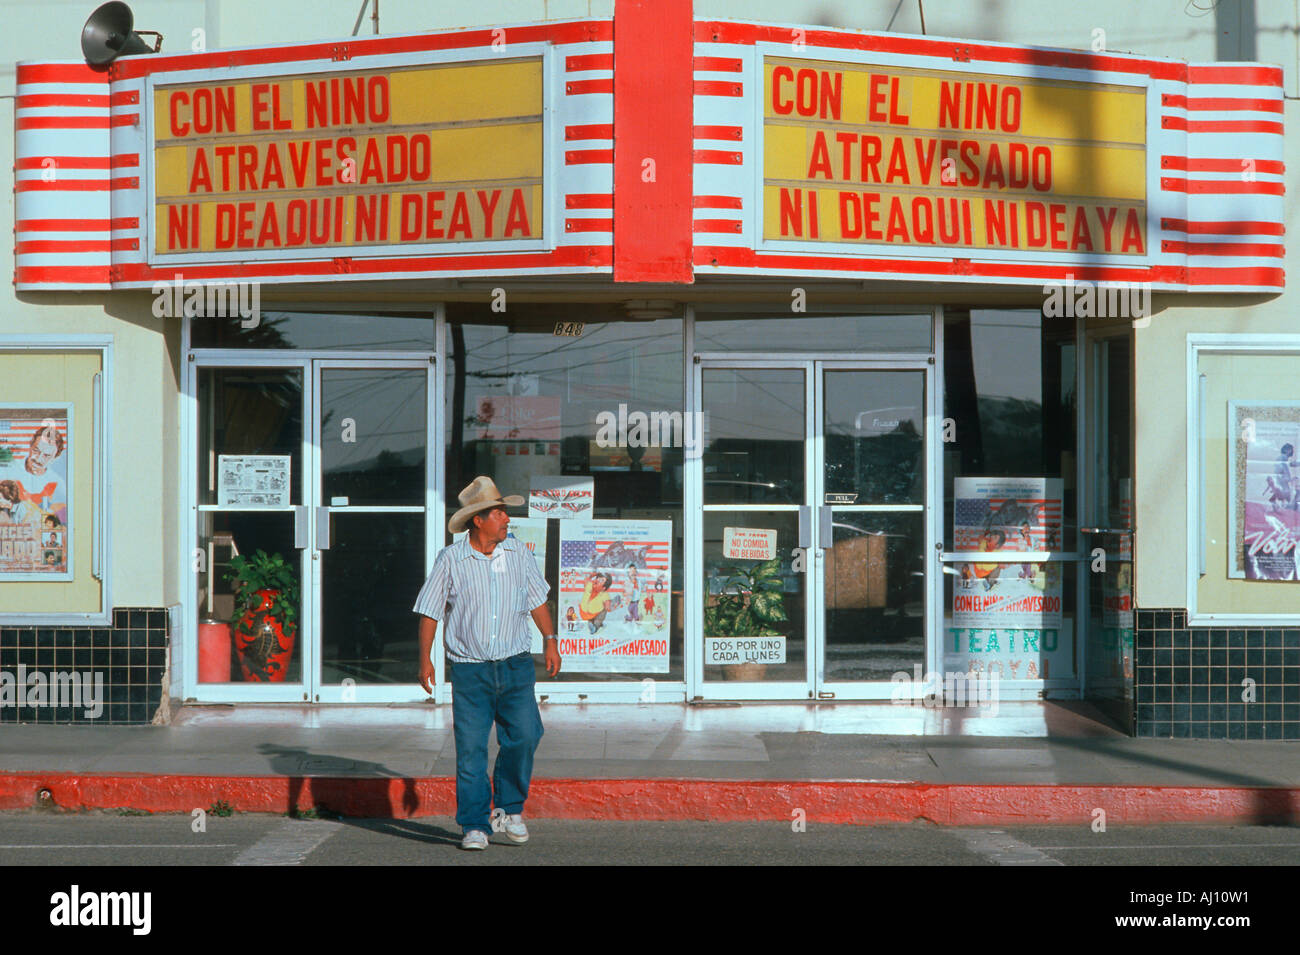 I like to go to the movie theater in spanish